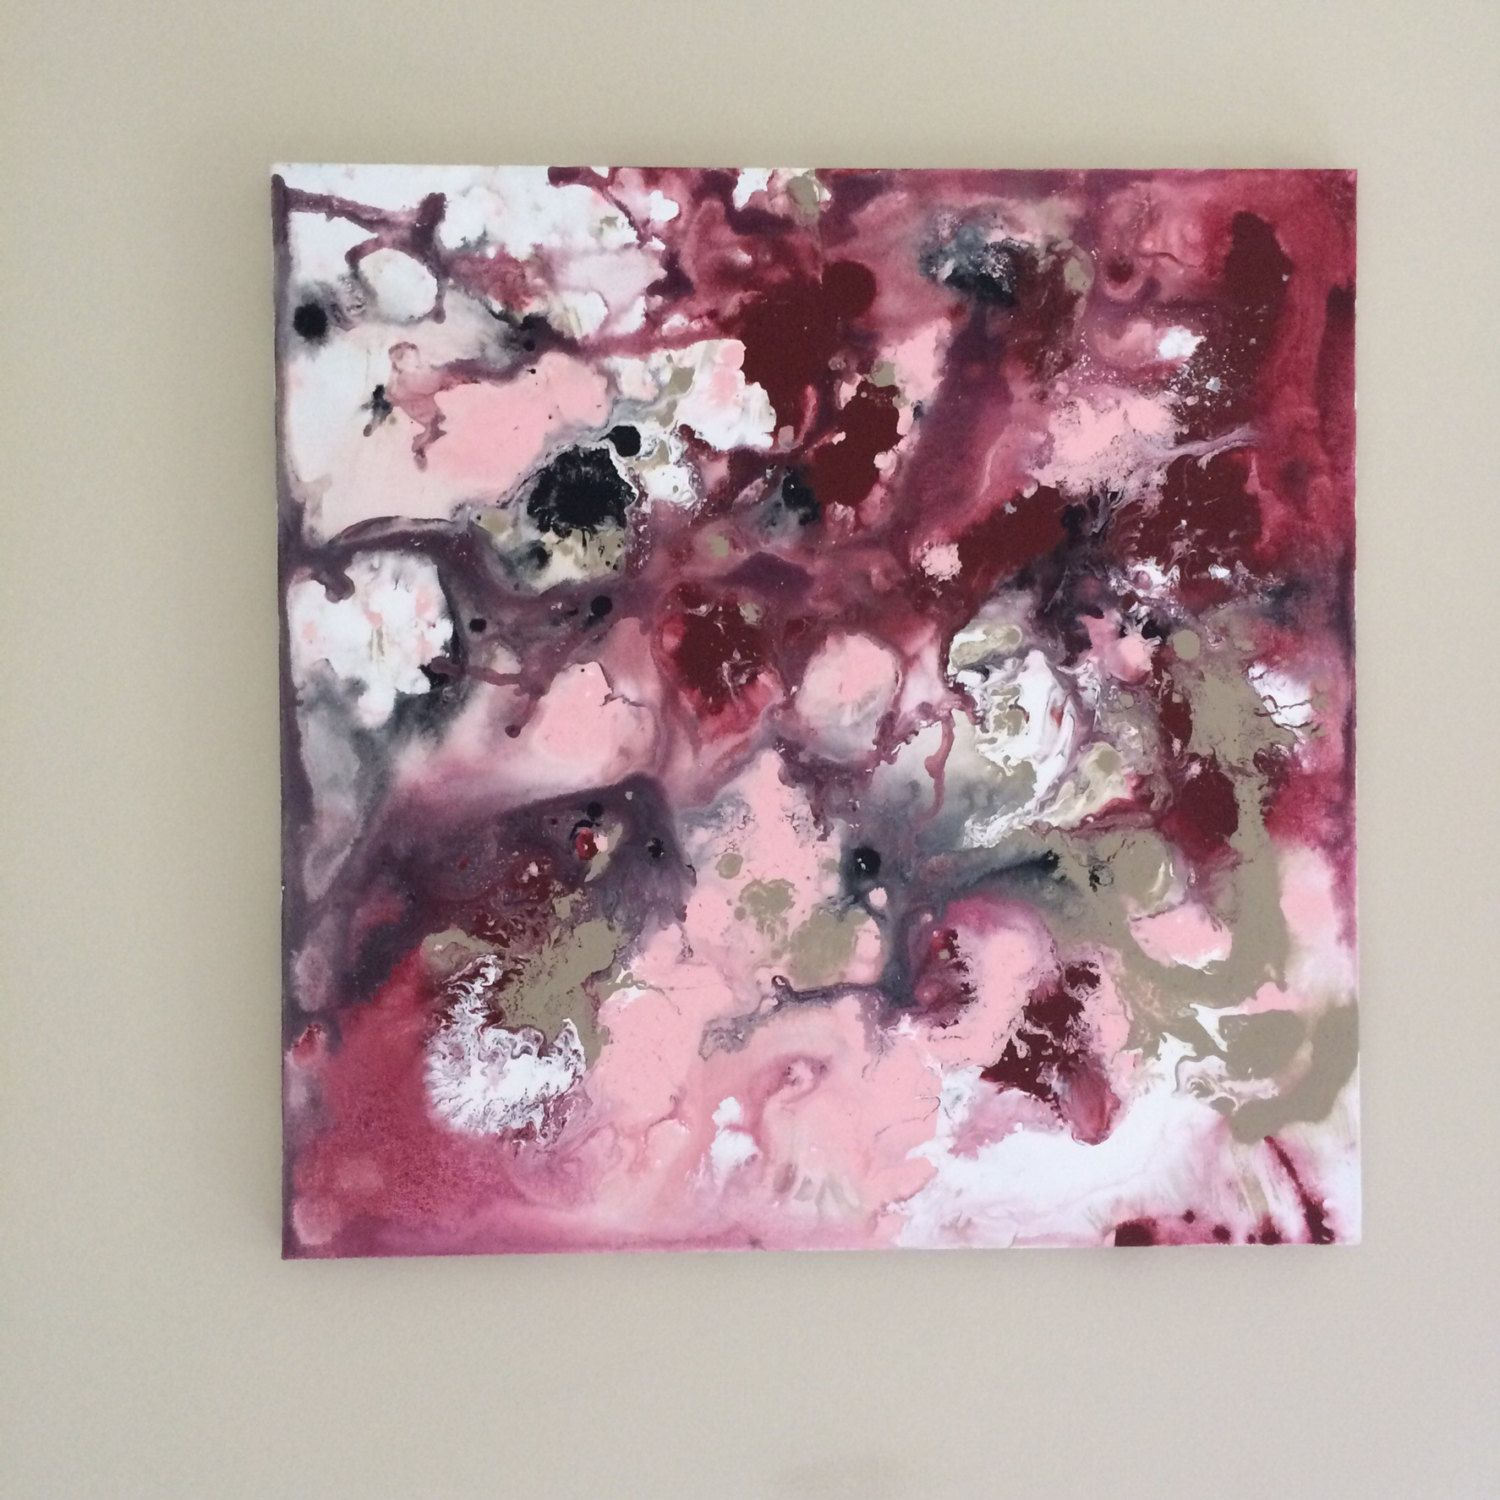 Abstract flow art burgundy pink art pink painting original acrylic